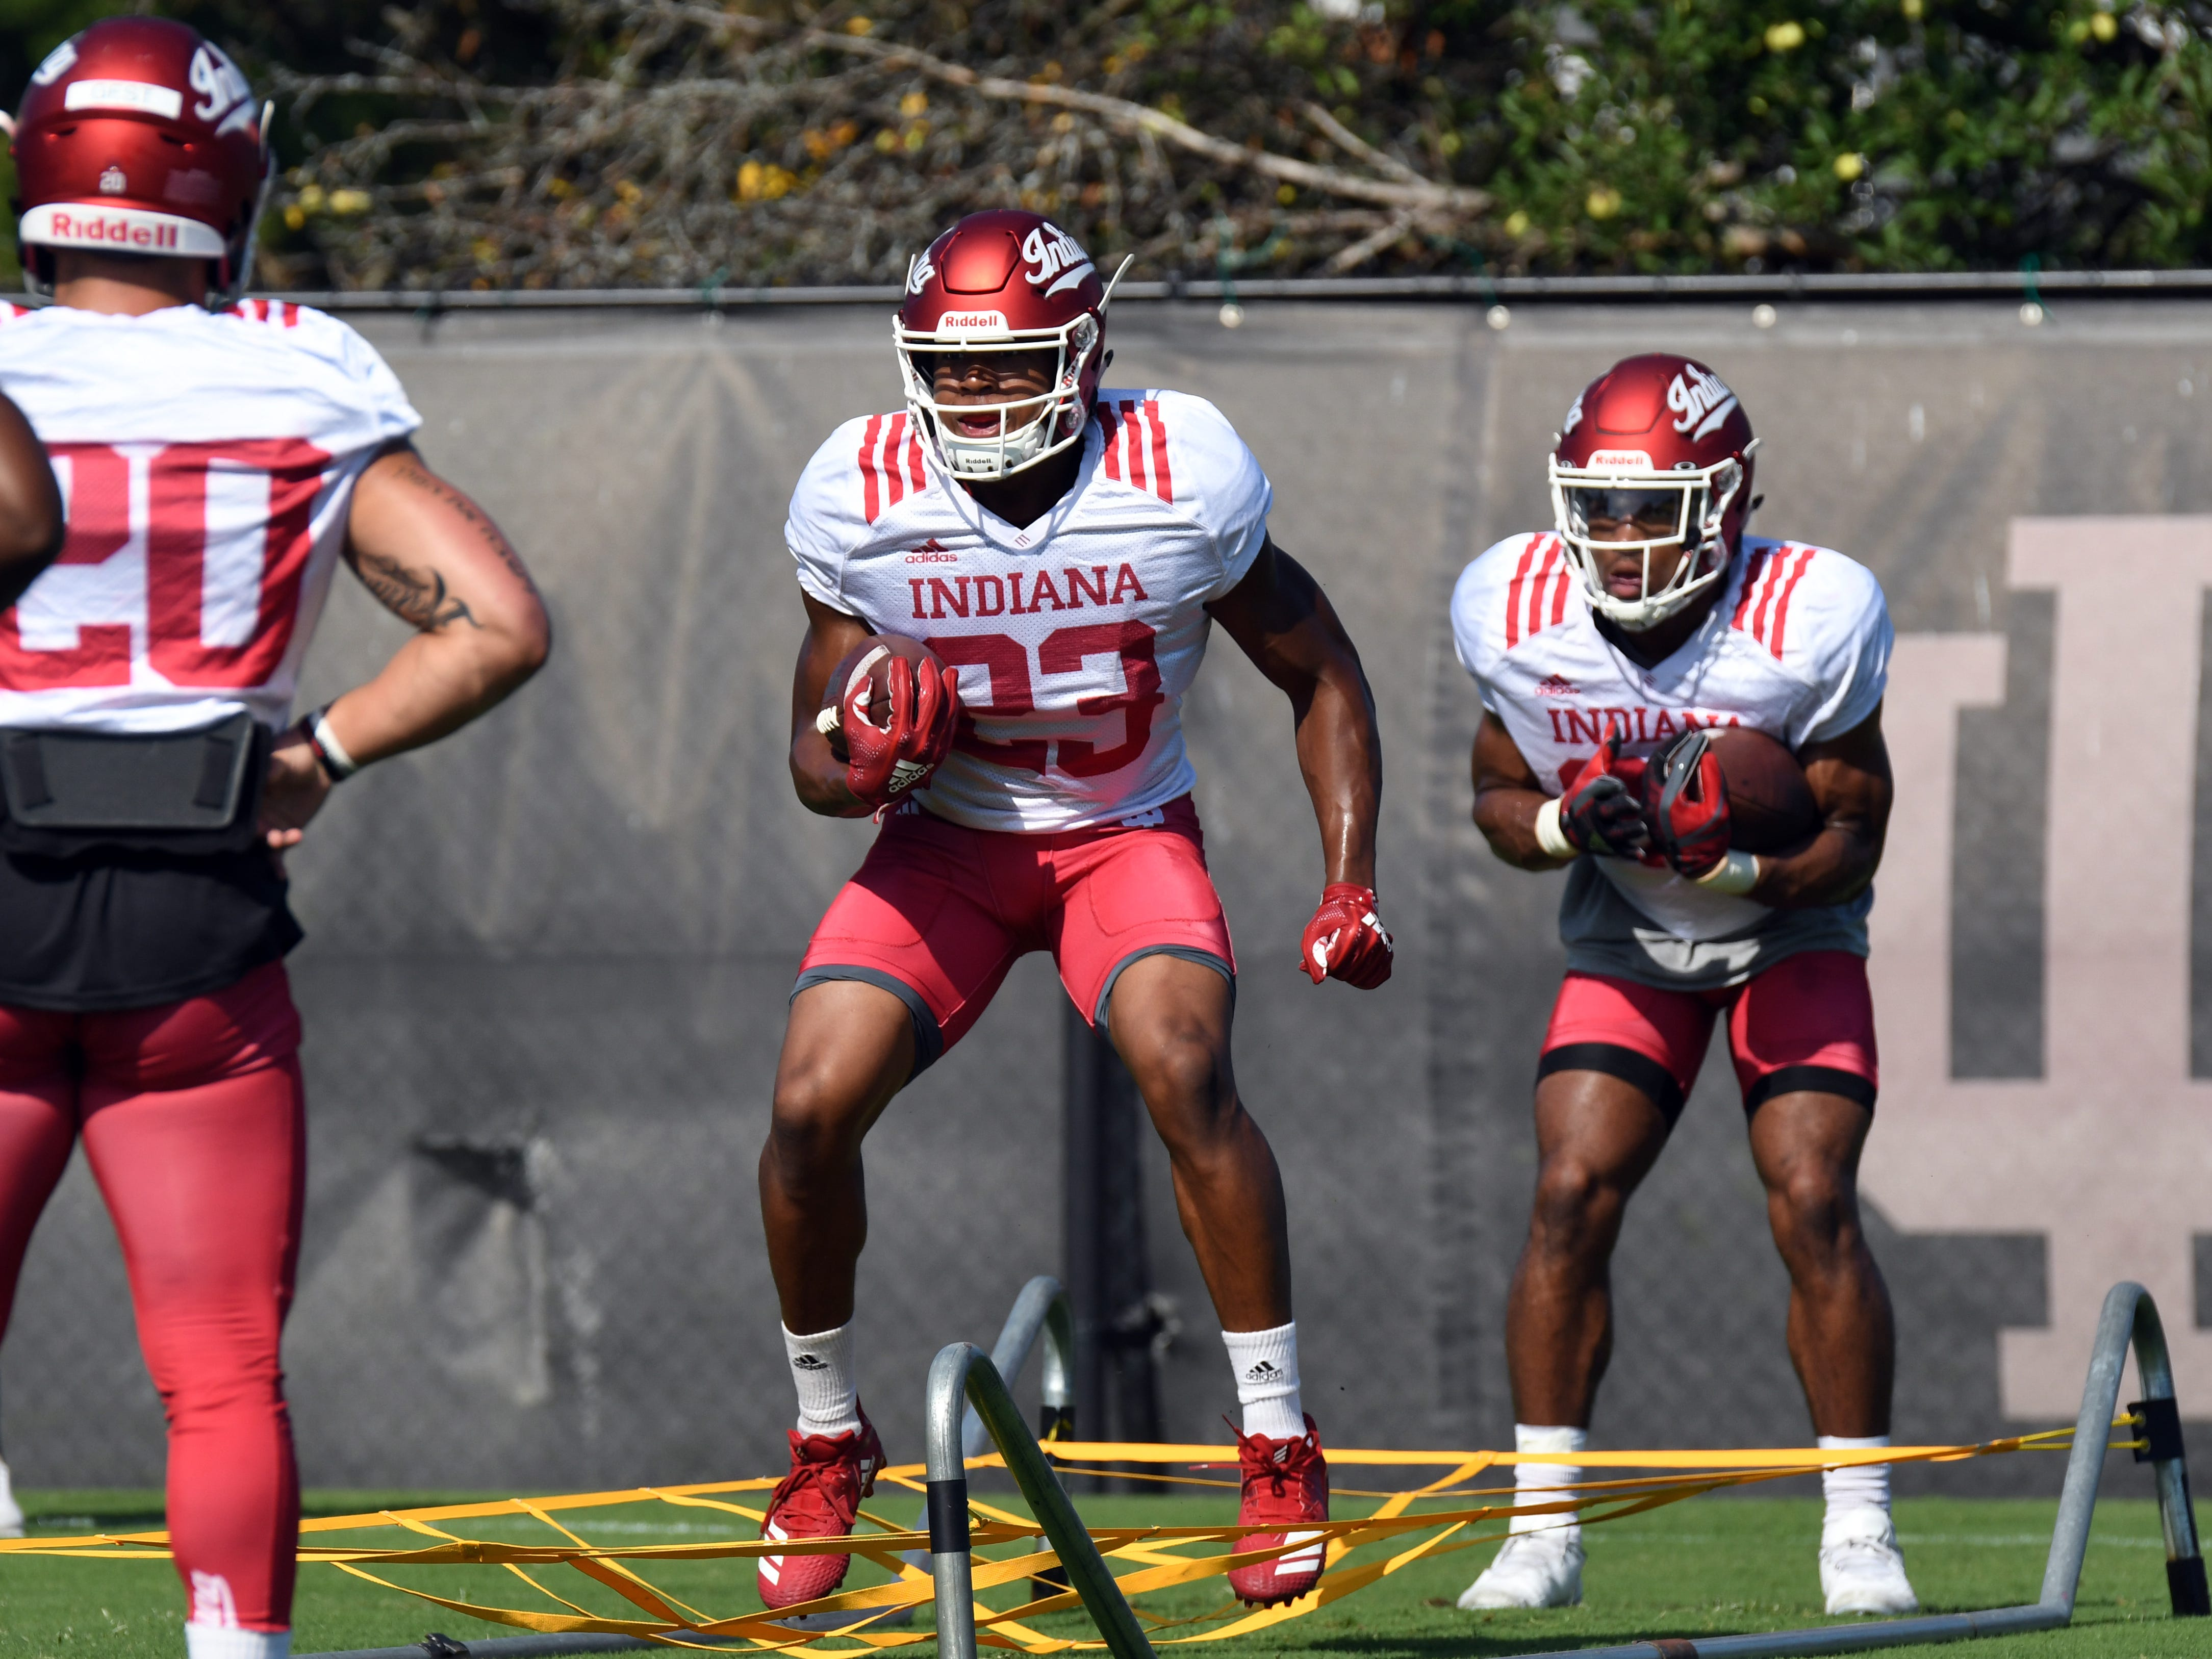 Indiana Hoosiers running back Ronnie Walker Jr. (23) participates in drills during practice at Mellencamp Pavilion in Bloomington, Ind., on Monday, August 6, 2018.